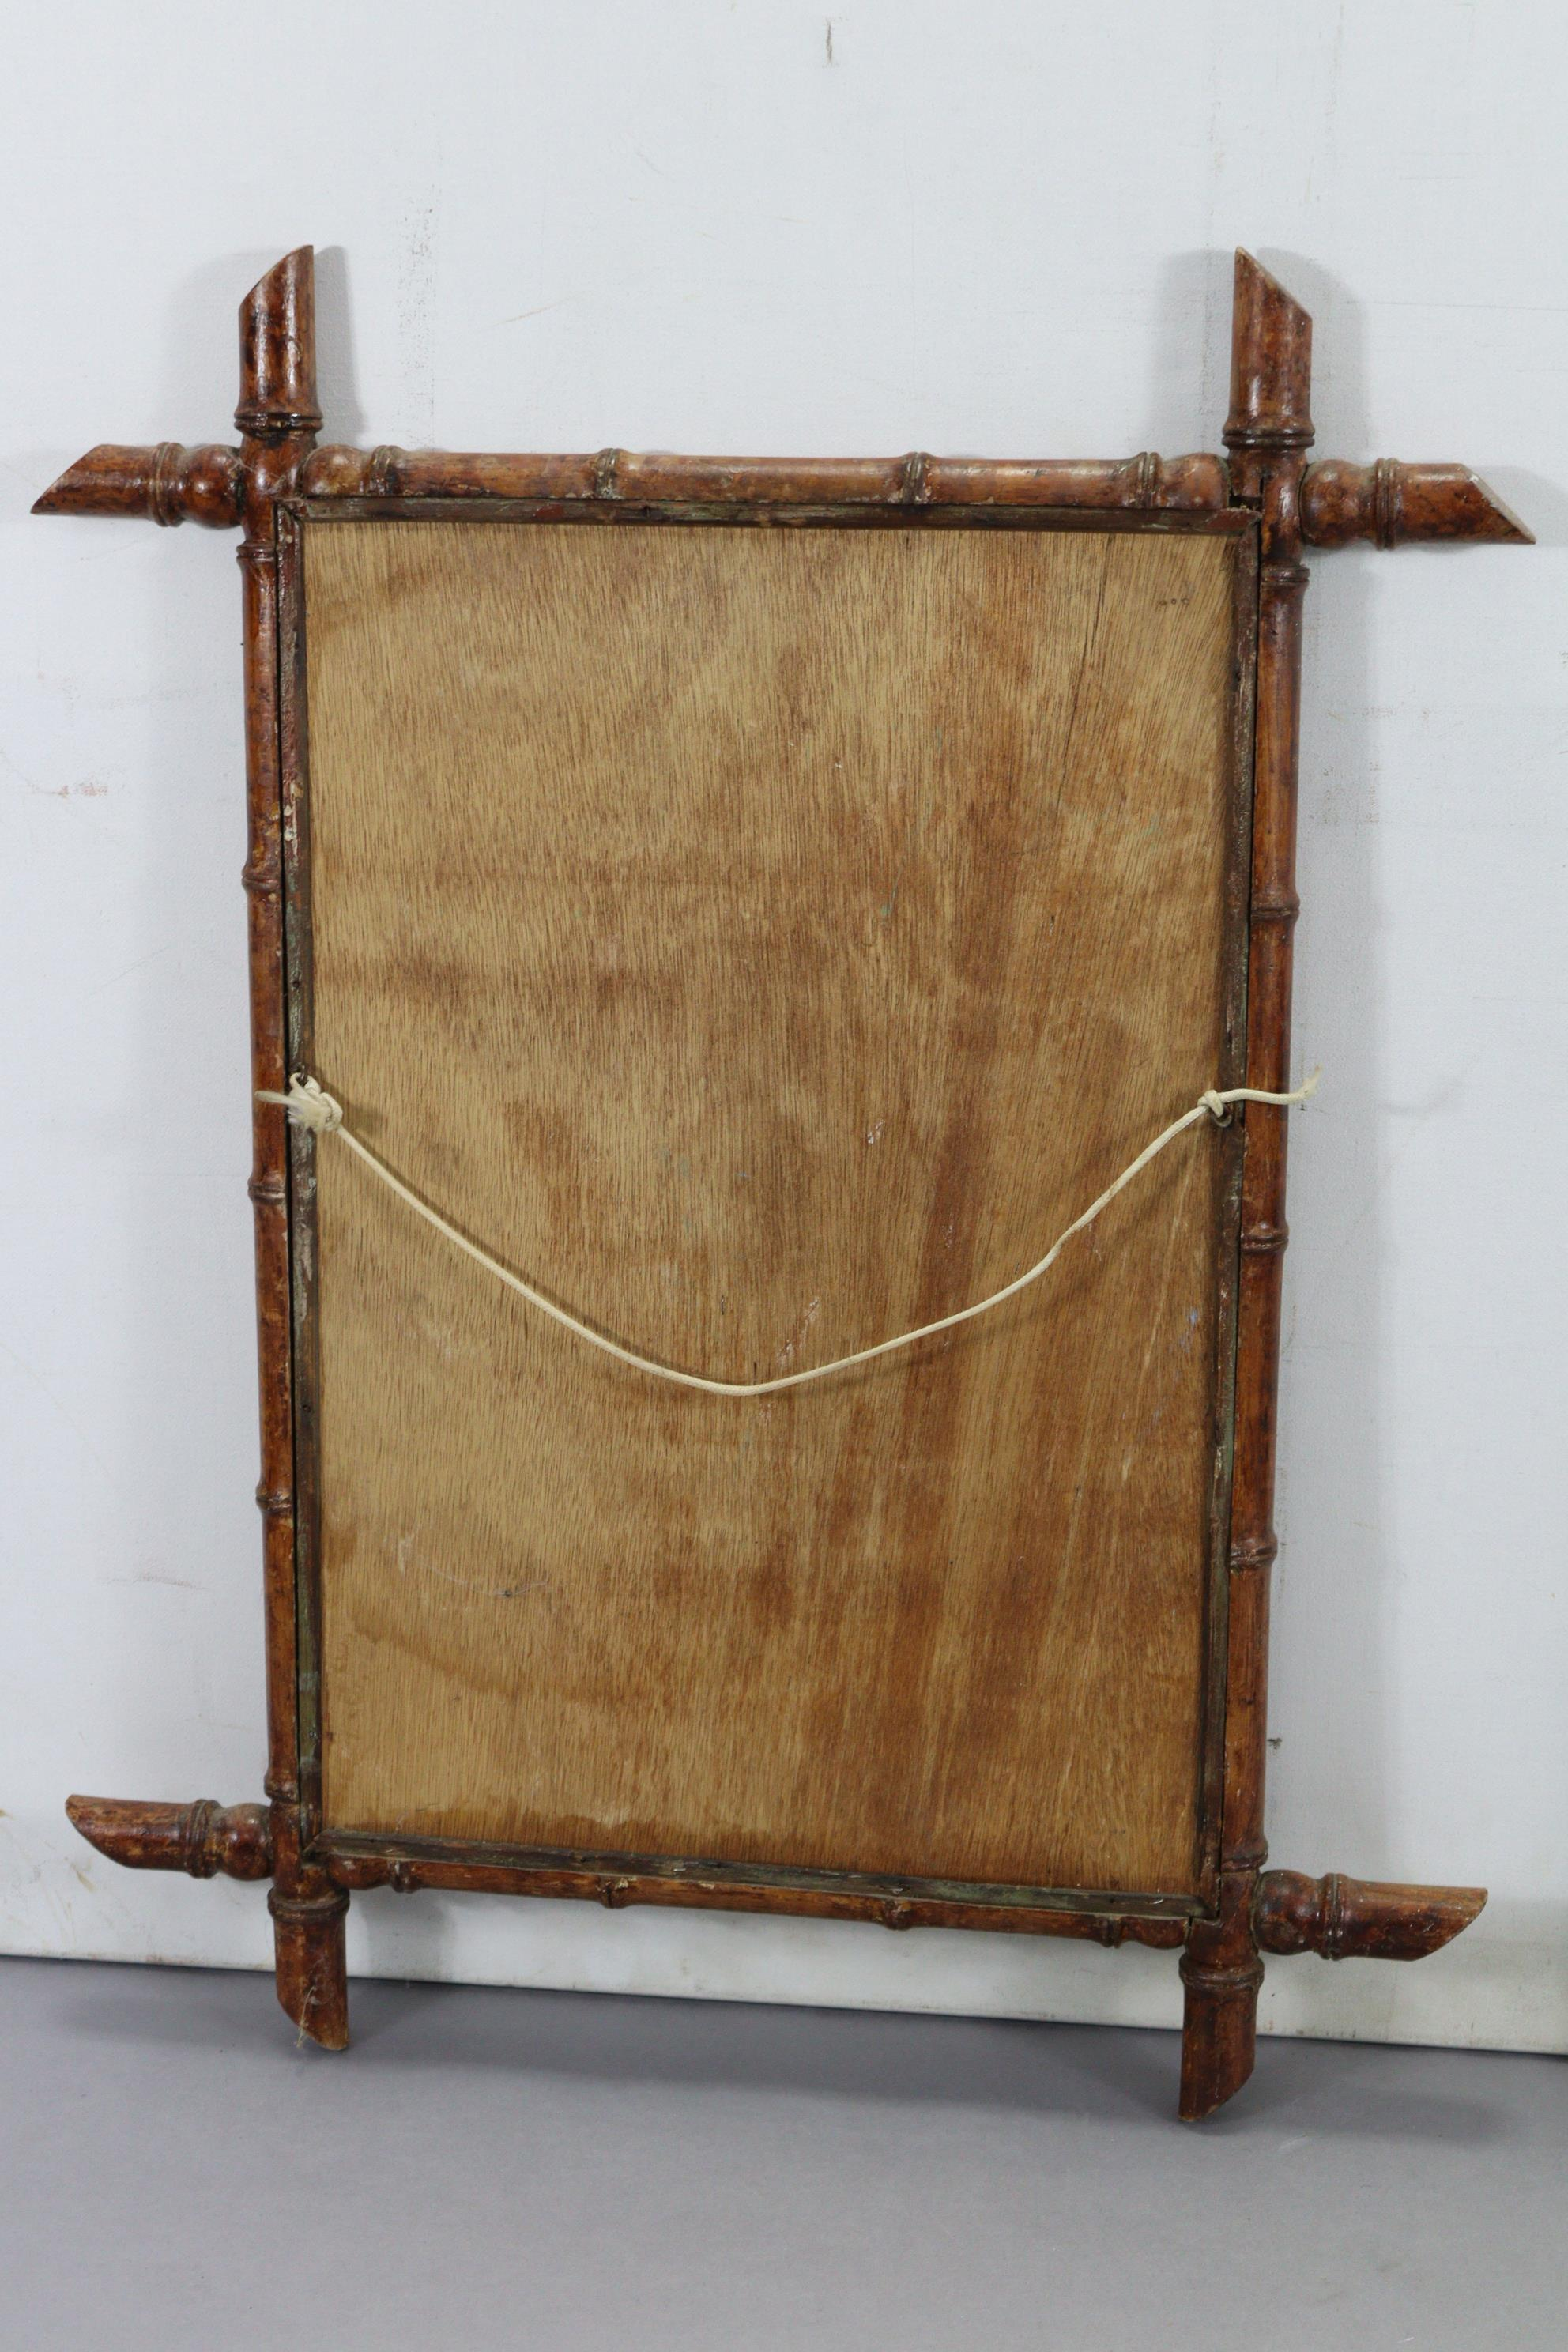 """A continental-style gilt frame pier glass, 31"""" x 16""""; together with two rectangular wall mirrors. - Image 10 of 10"""